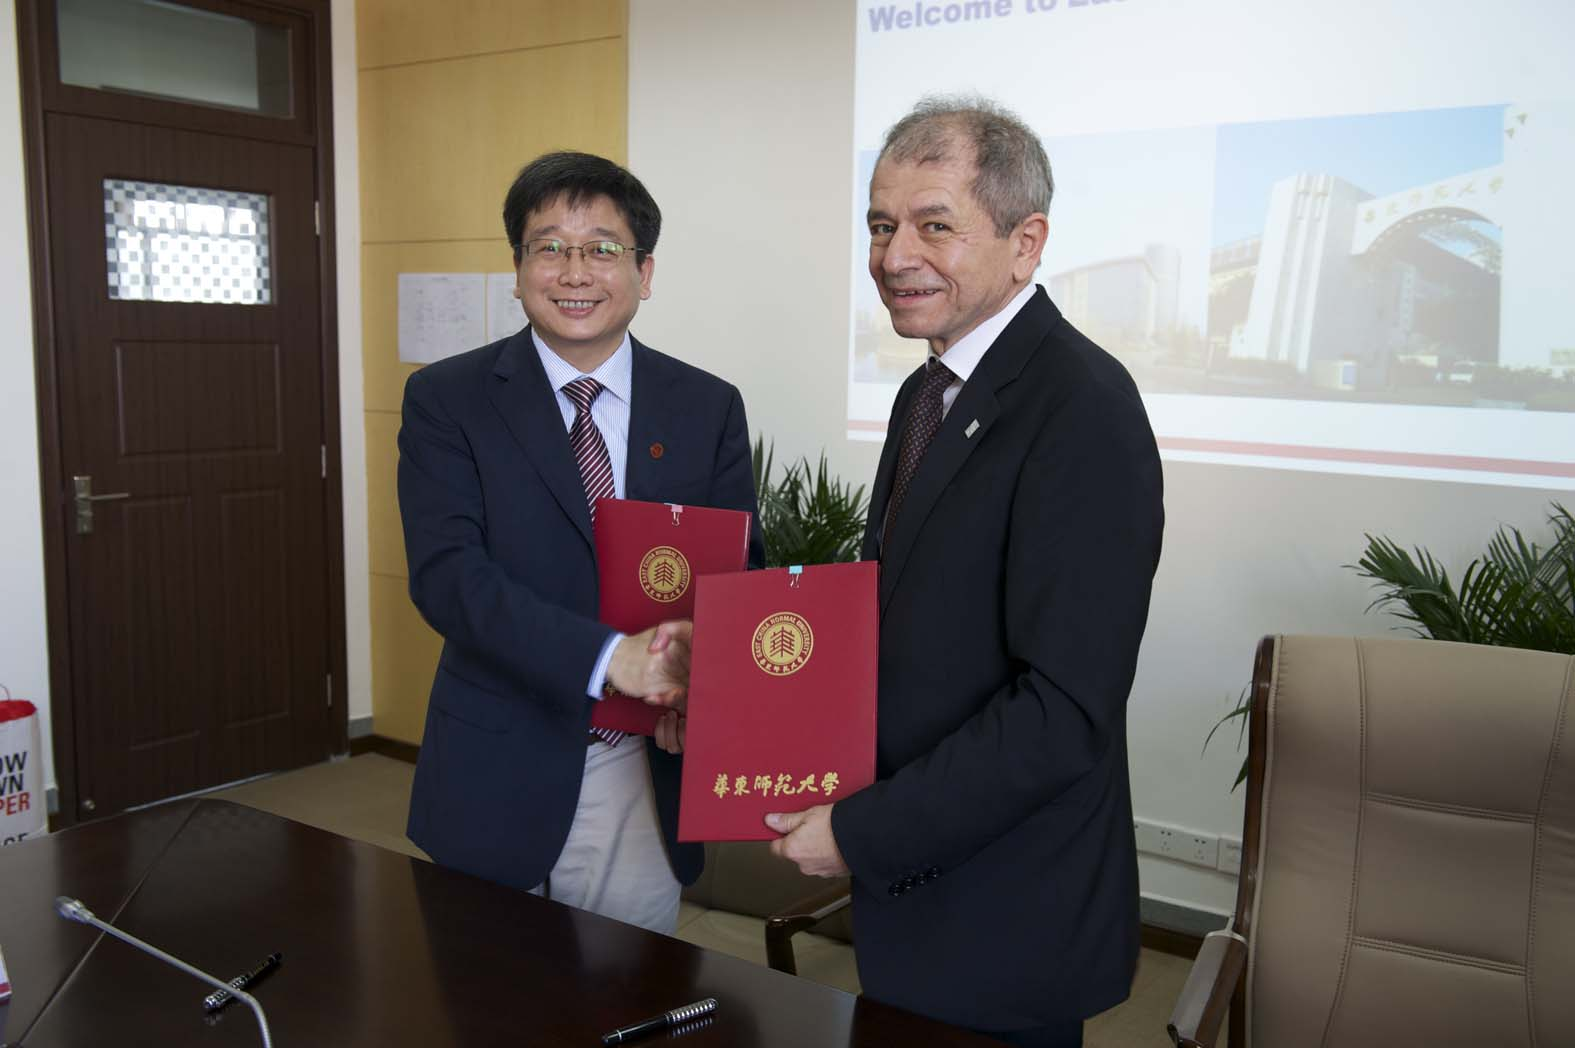 Prof. Qun Chen, president of East China Normal University, and Rector Prof. Antonio Loprieno pleased with the agreed cooperation